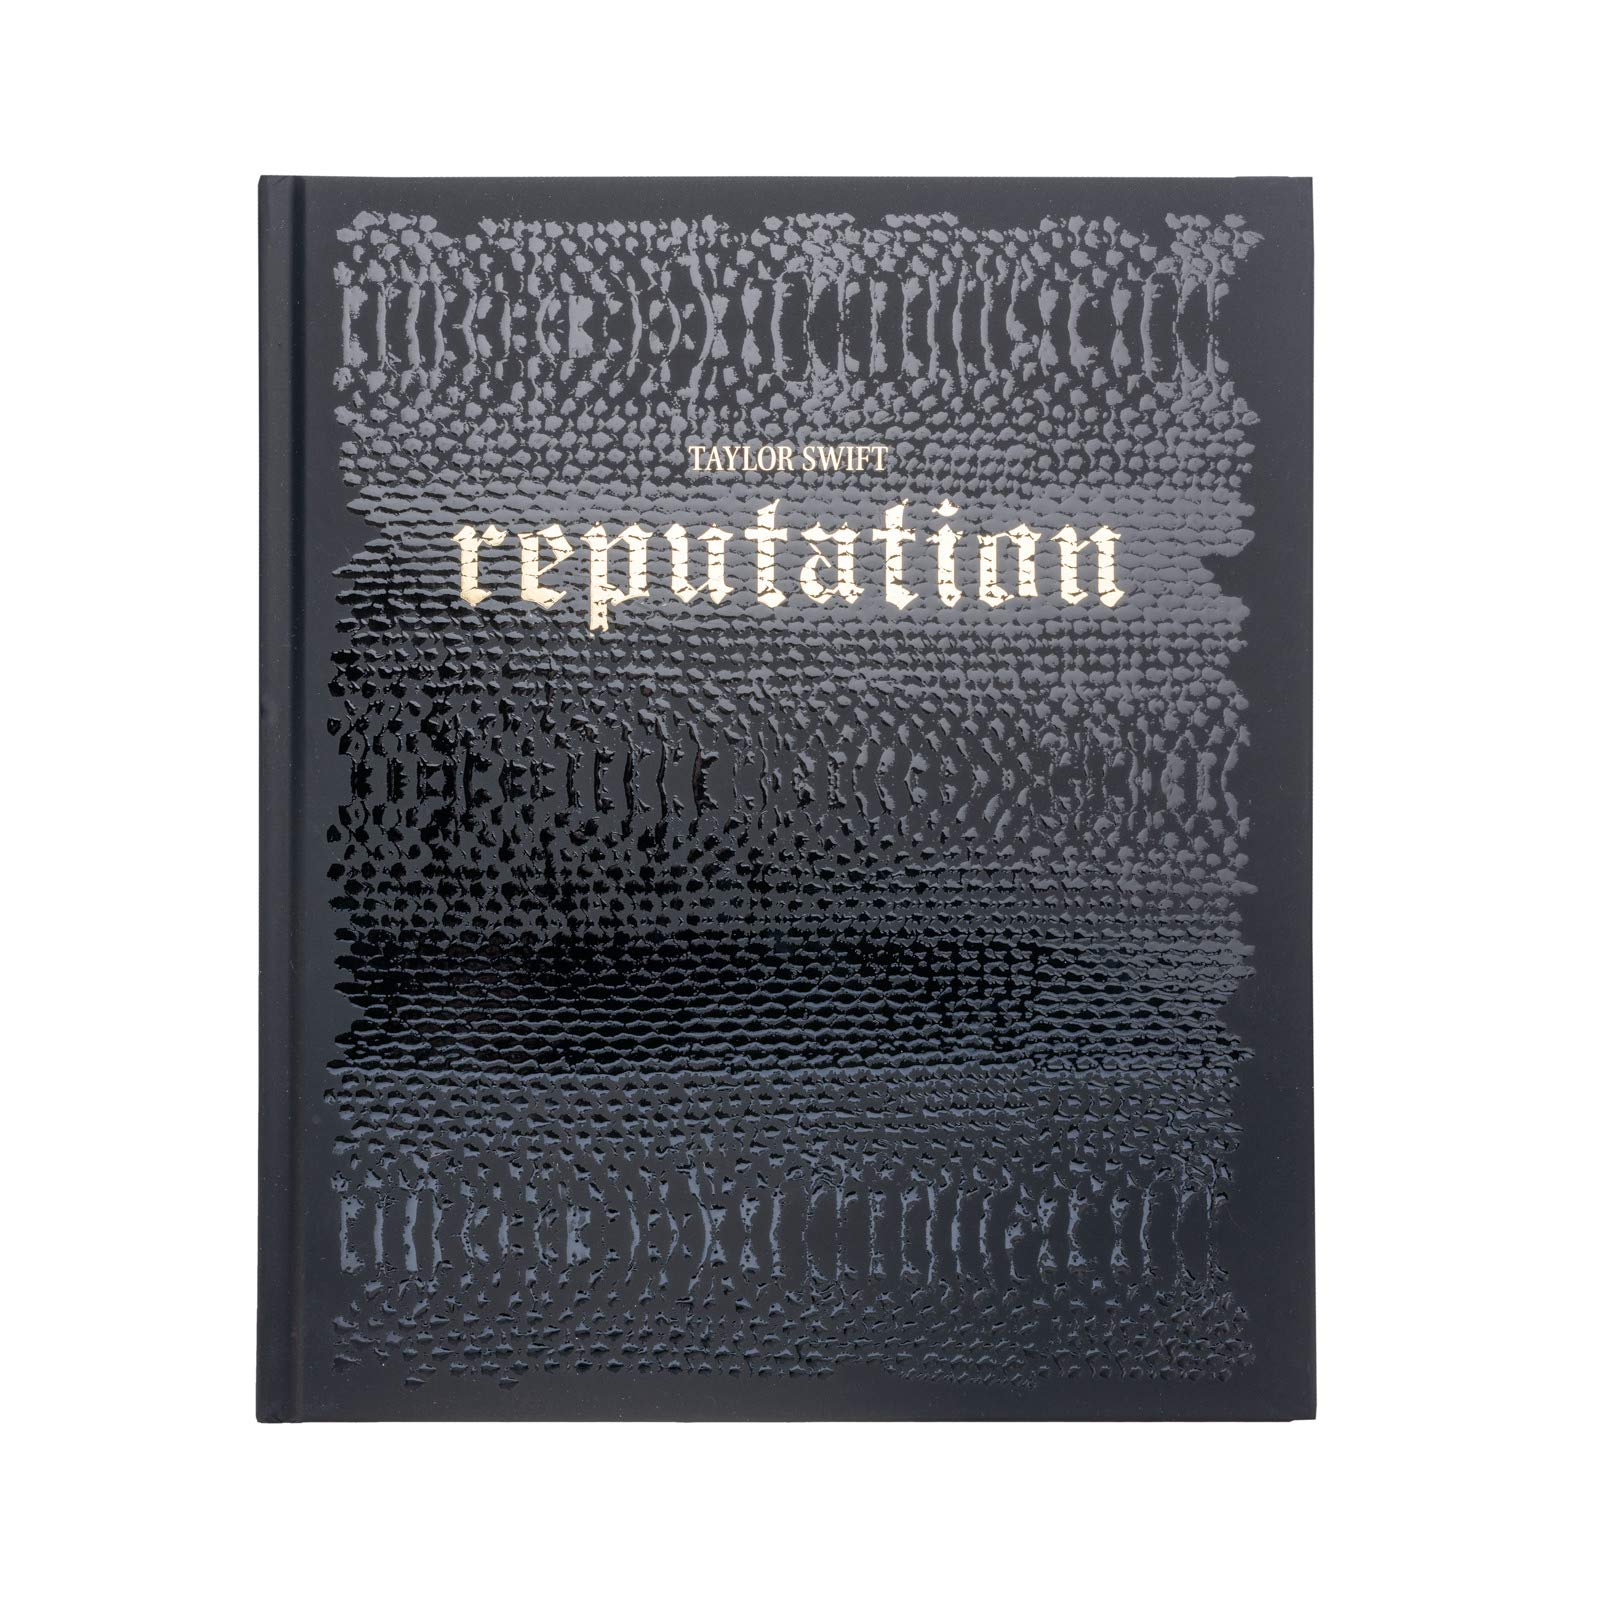 Taylor Swift Official Reputation Hardback Book by Taylor Swift